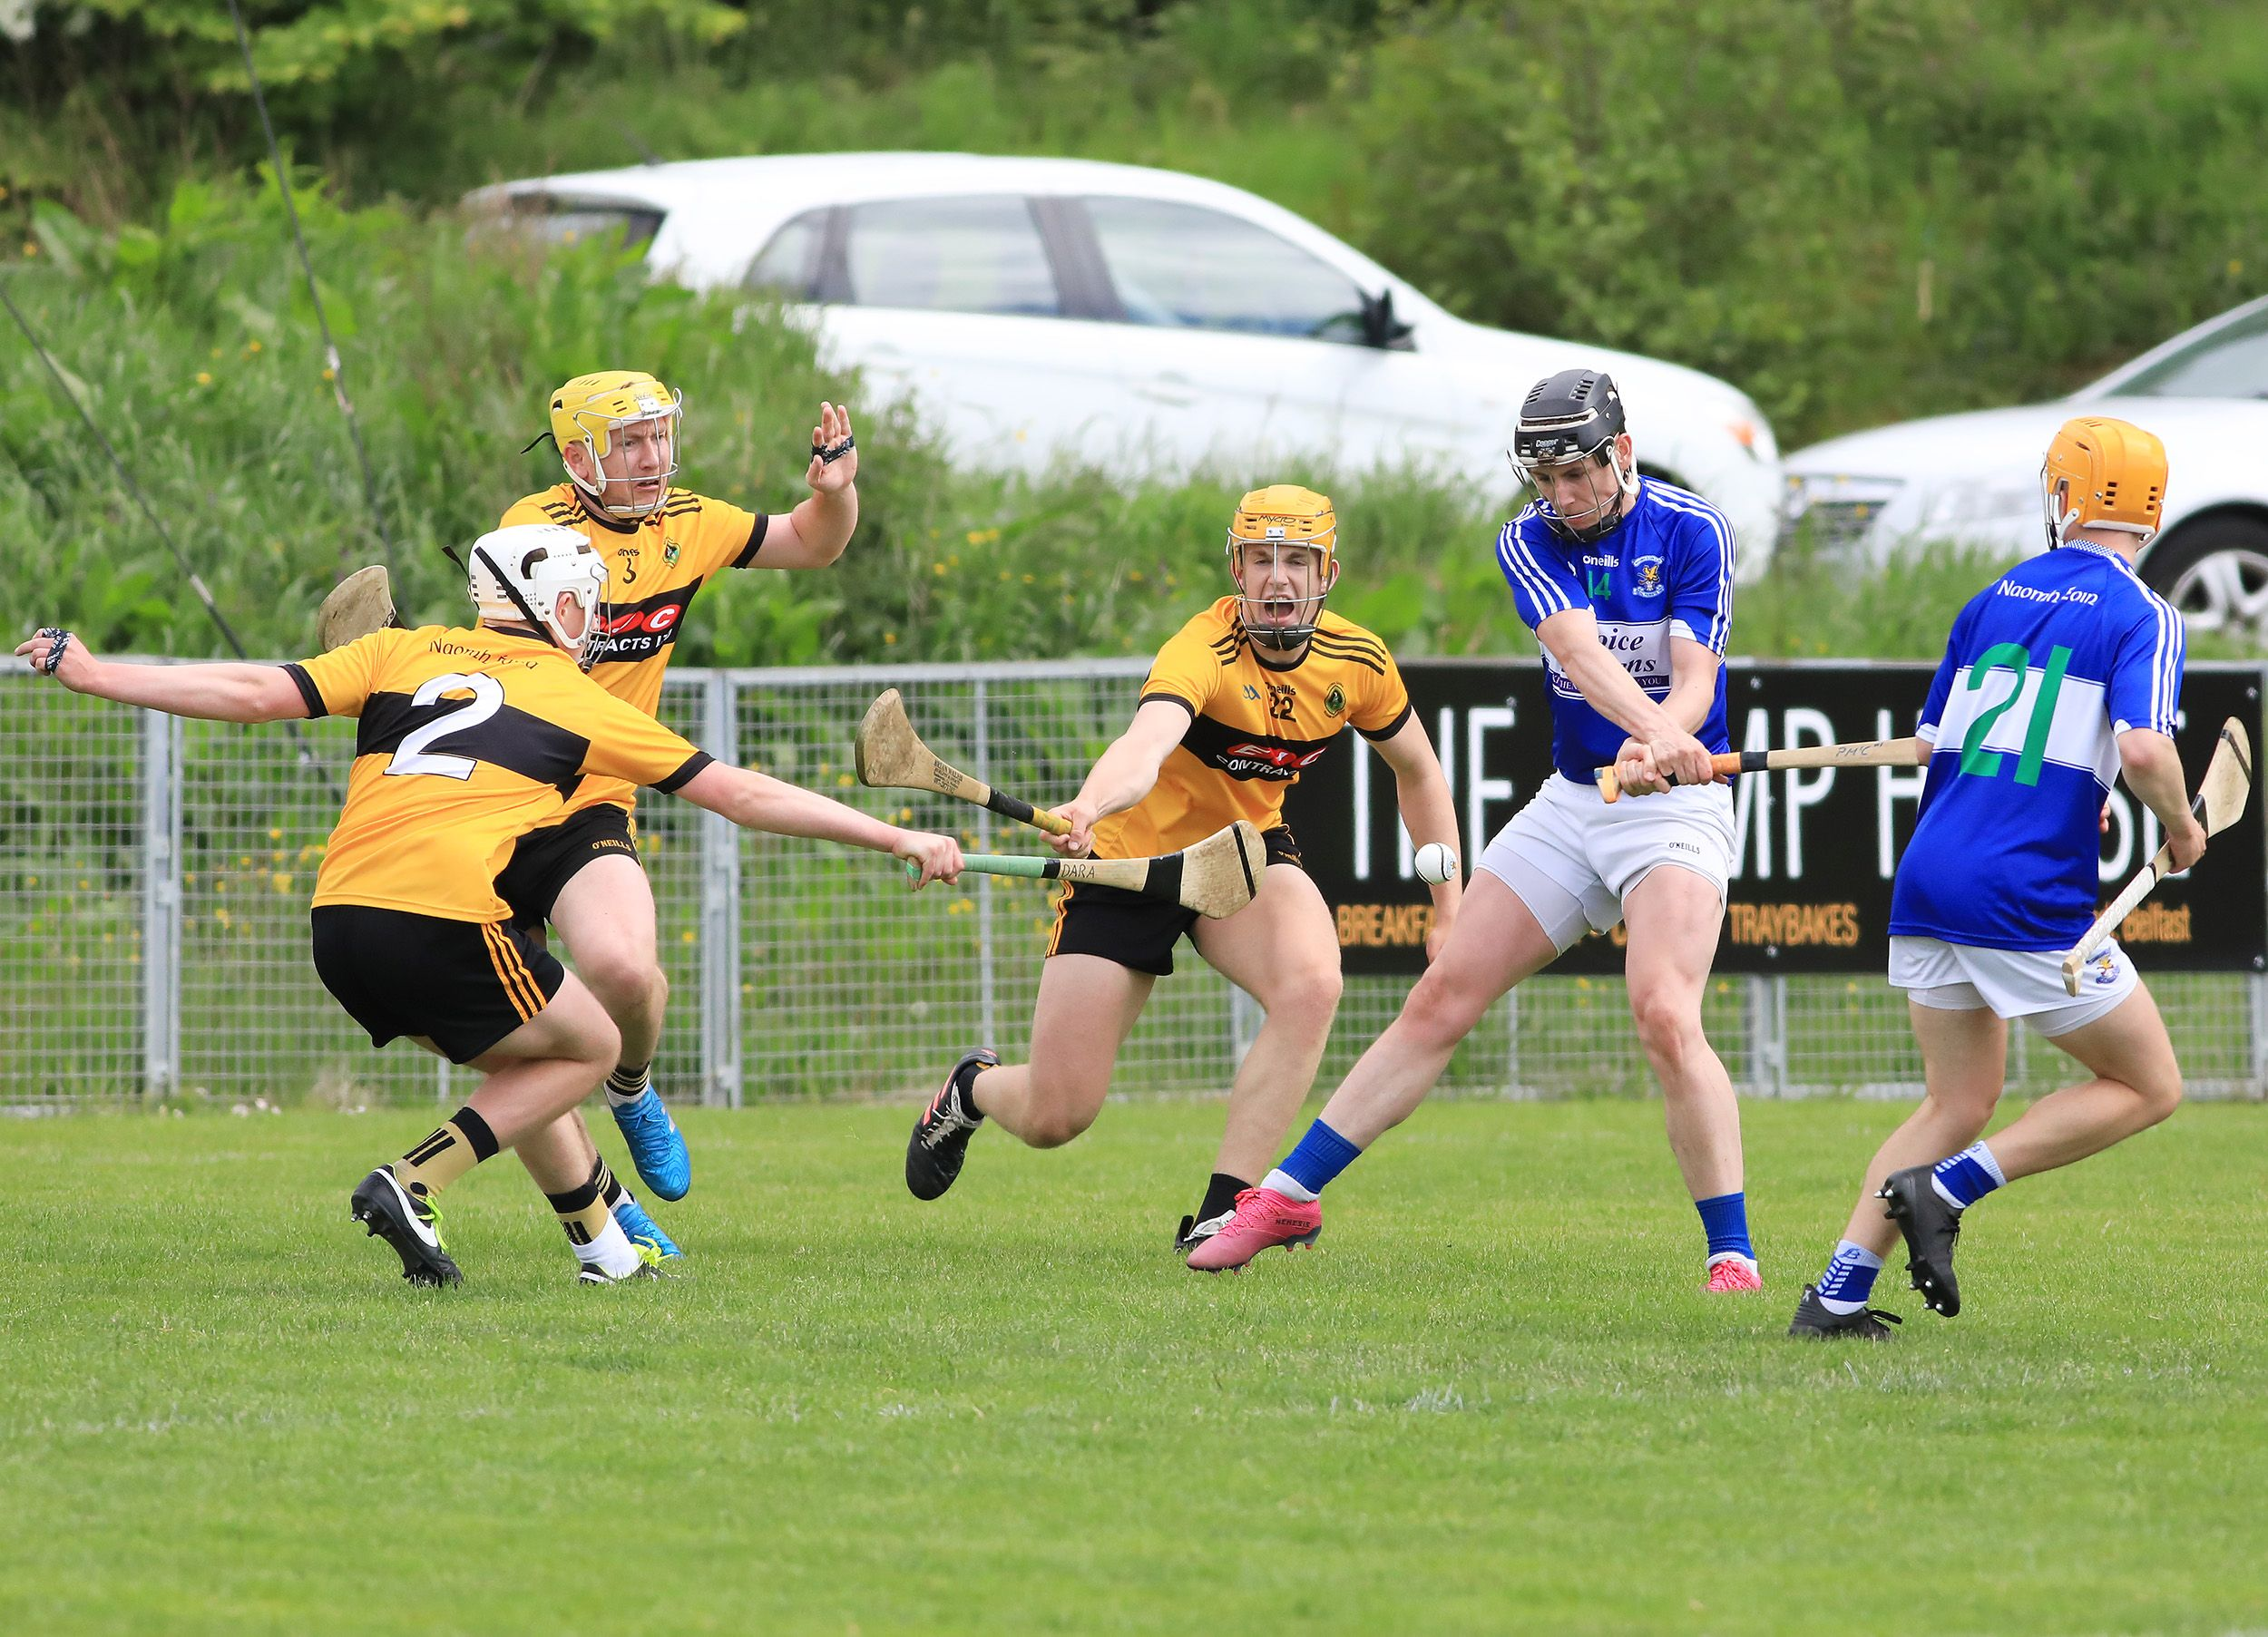 Naomh Éanna will hope to bounce back from last weekend\'s heavy defeat to St John\'s when they host Dunloy this evening